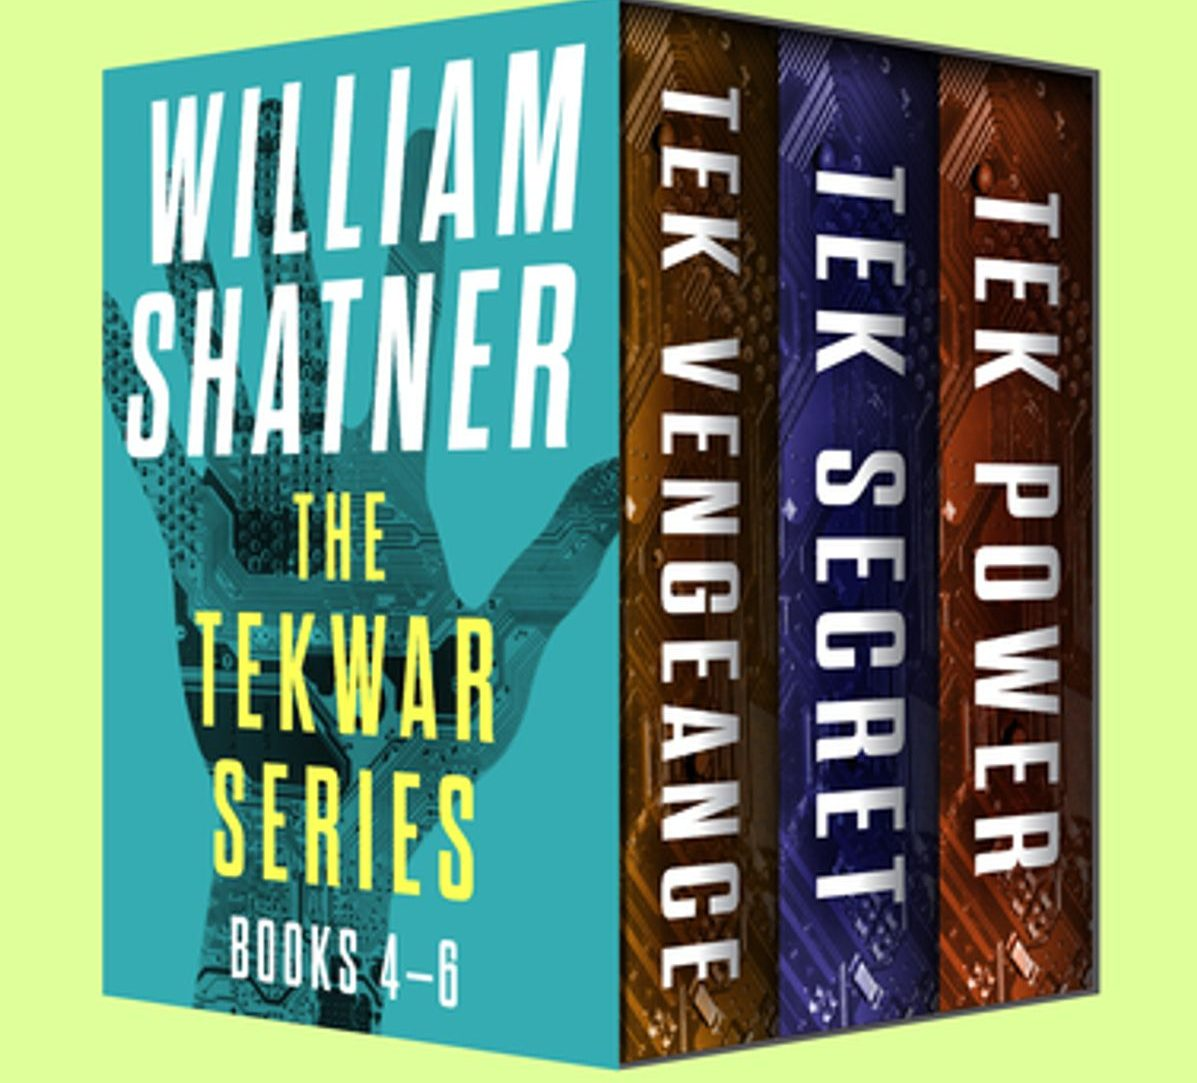 the tekwar series books 4 6 e1616409822783 21 Facts You Probably Never Knew About William Shatner